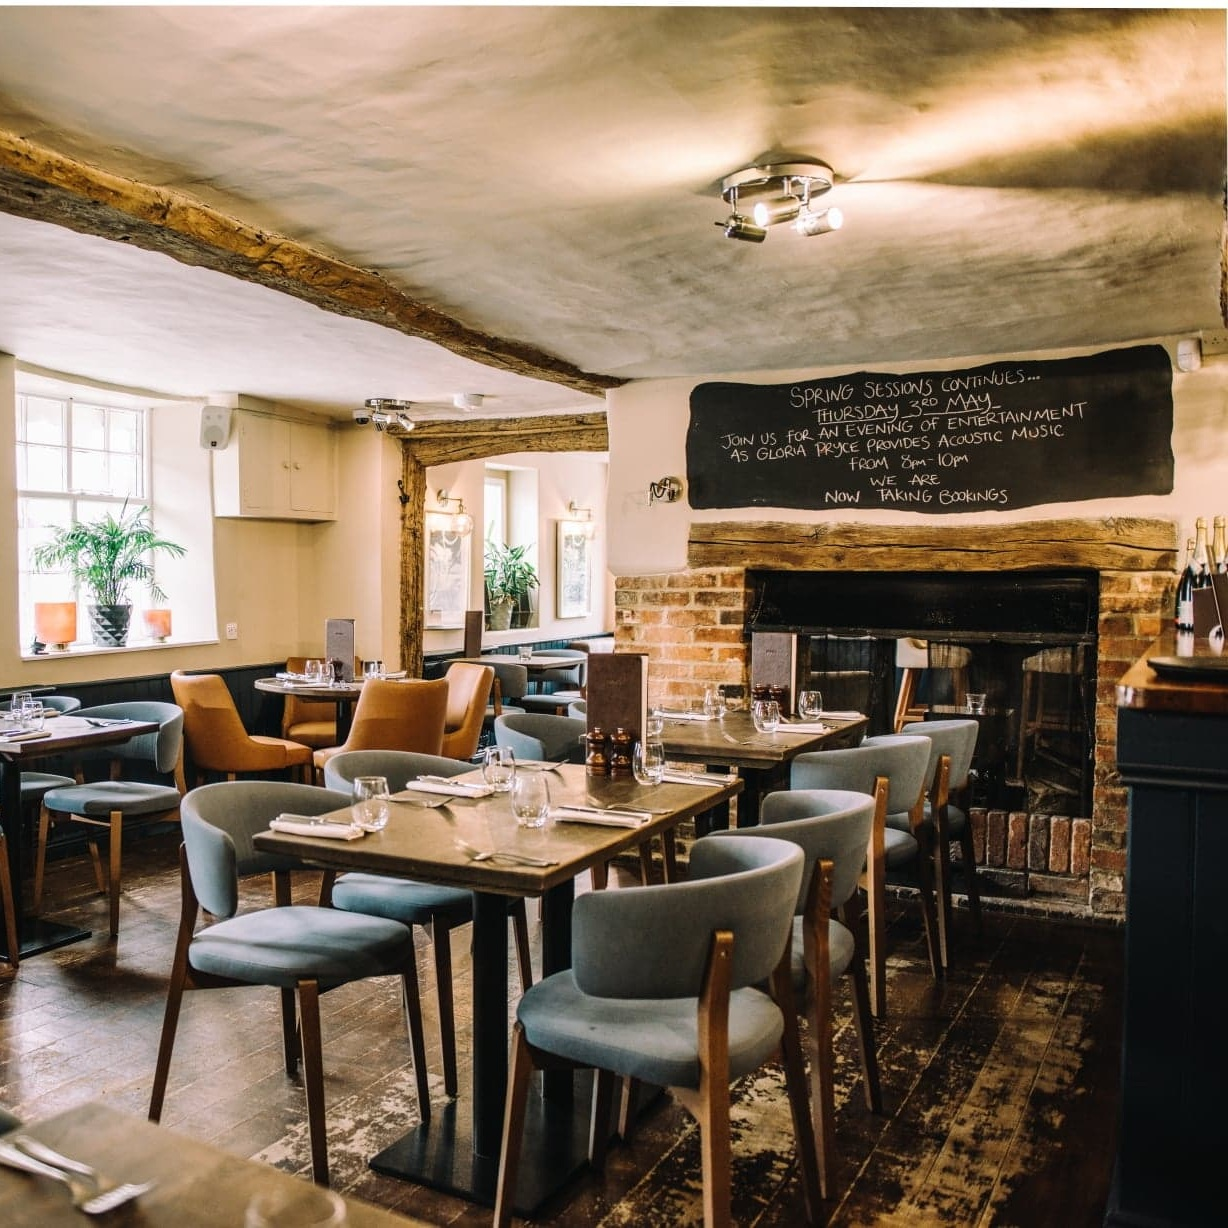 SHURLOCK ROW, BERKSHIRE - A first-class dining experience in a rural Berkshire